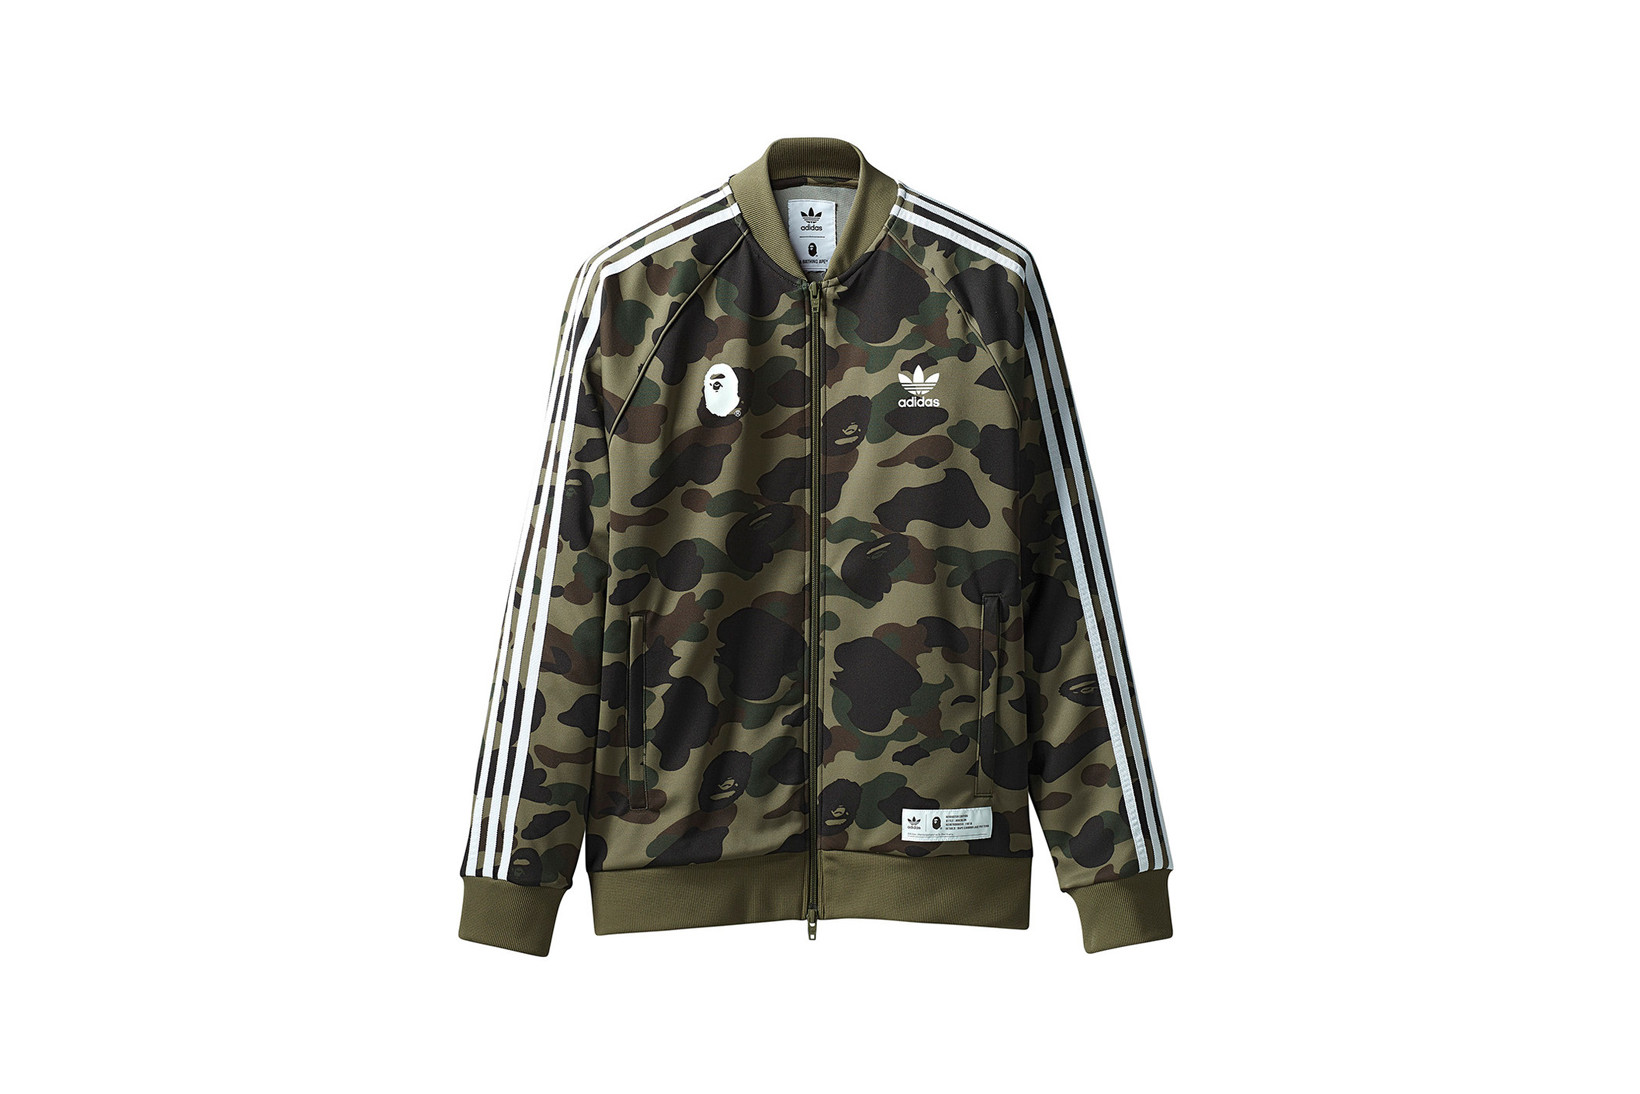 deacd40ef5ce Adidas Originals and BAPE present in collaboration the Adicolor collection